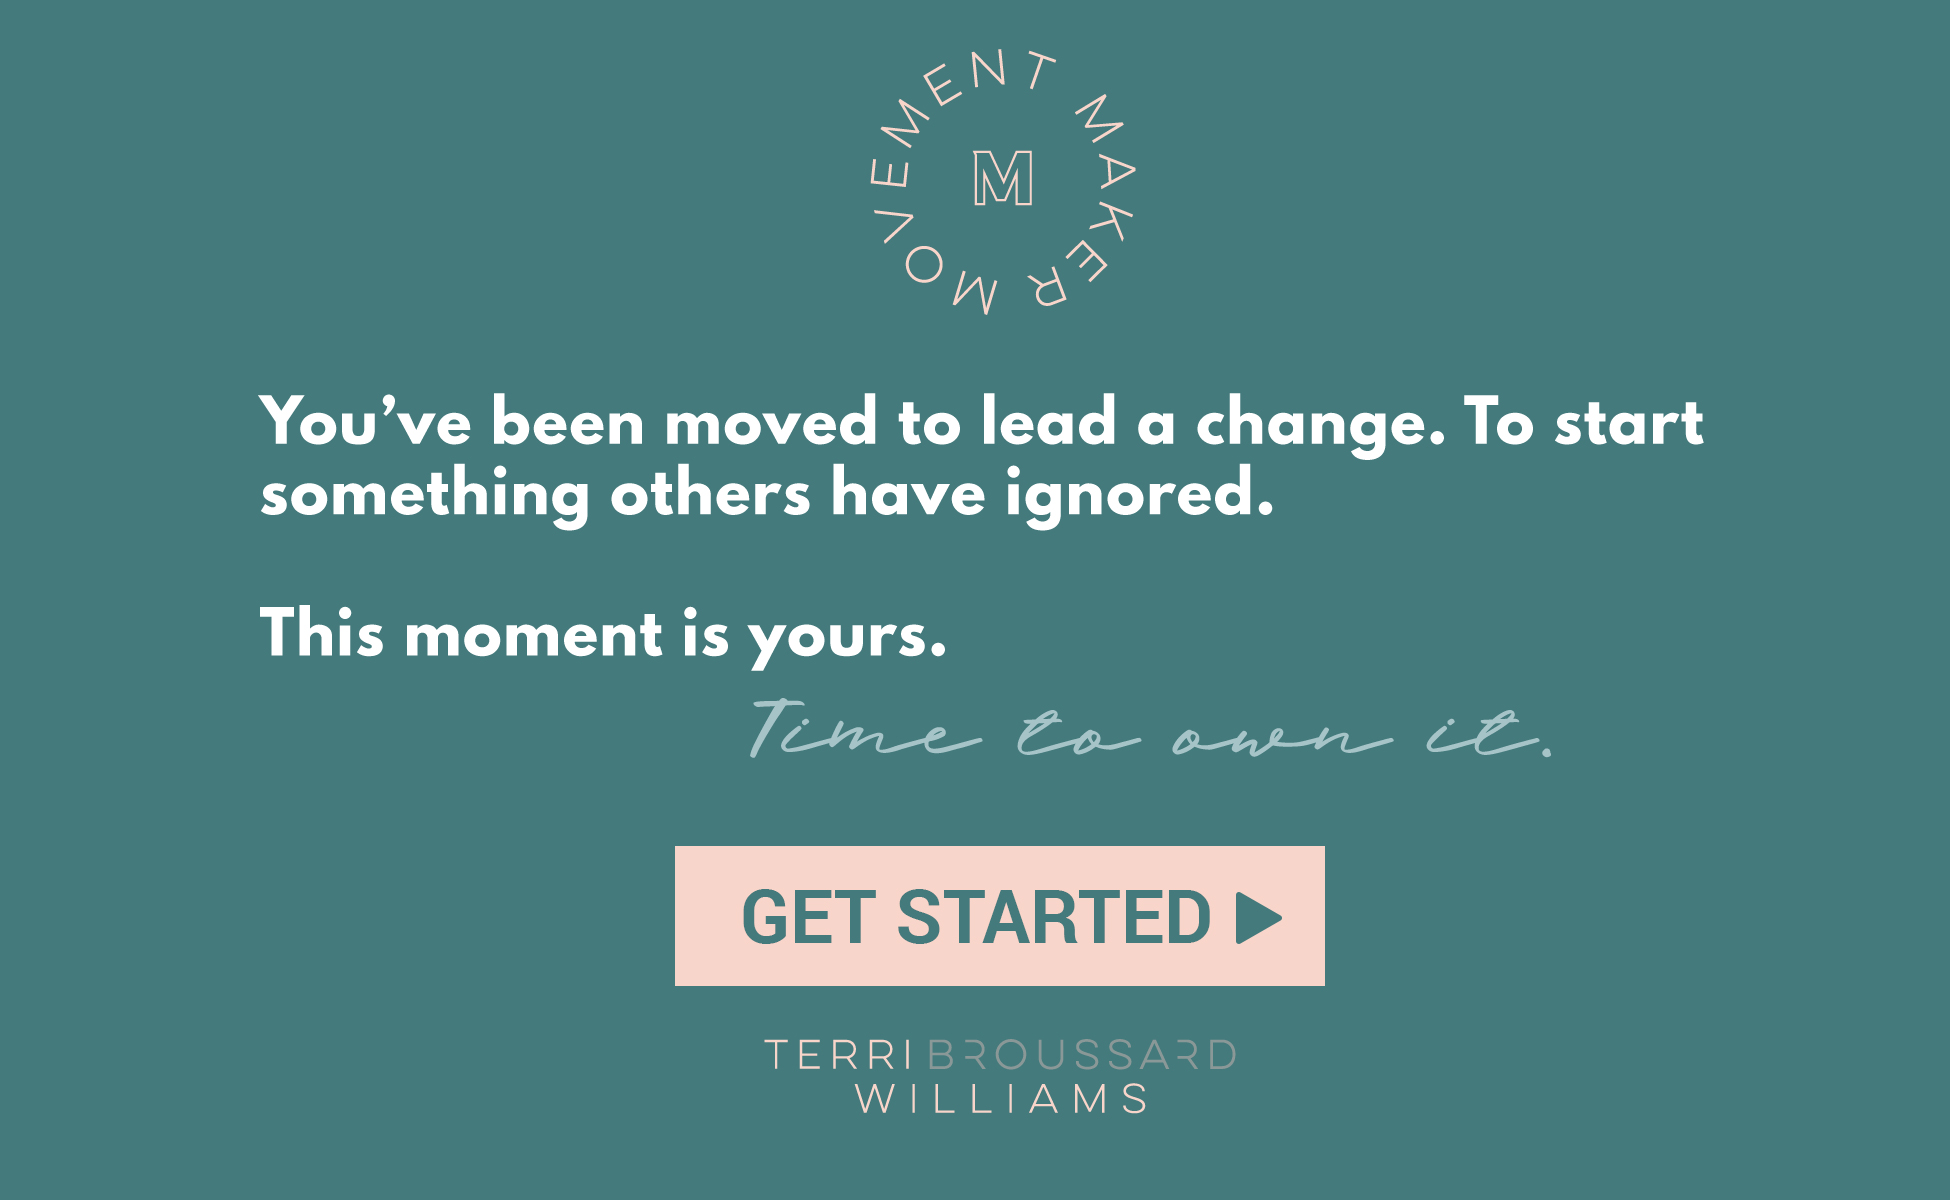 Get Started With Terri Broussard Williams